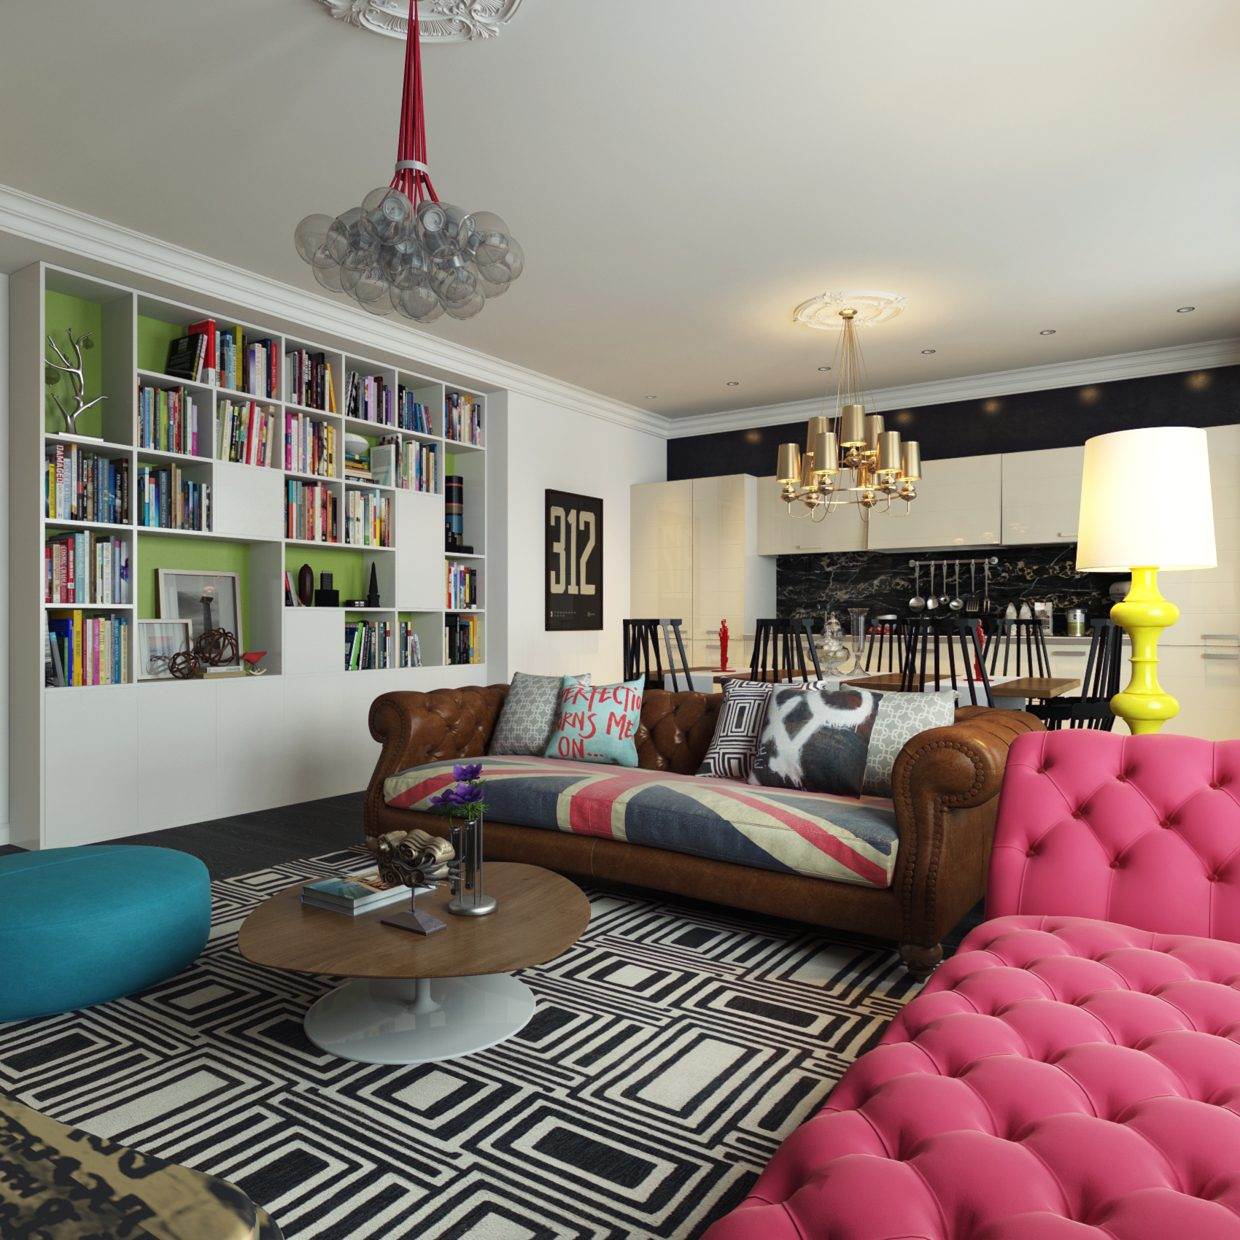 Home Design Ideas Colors: Modern Pop Art Style Apartment